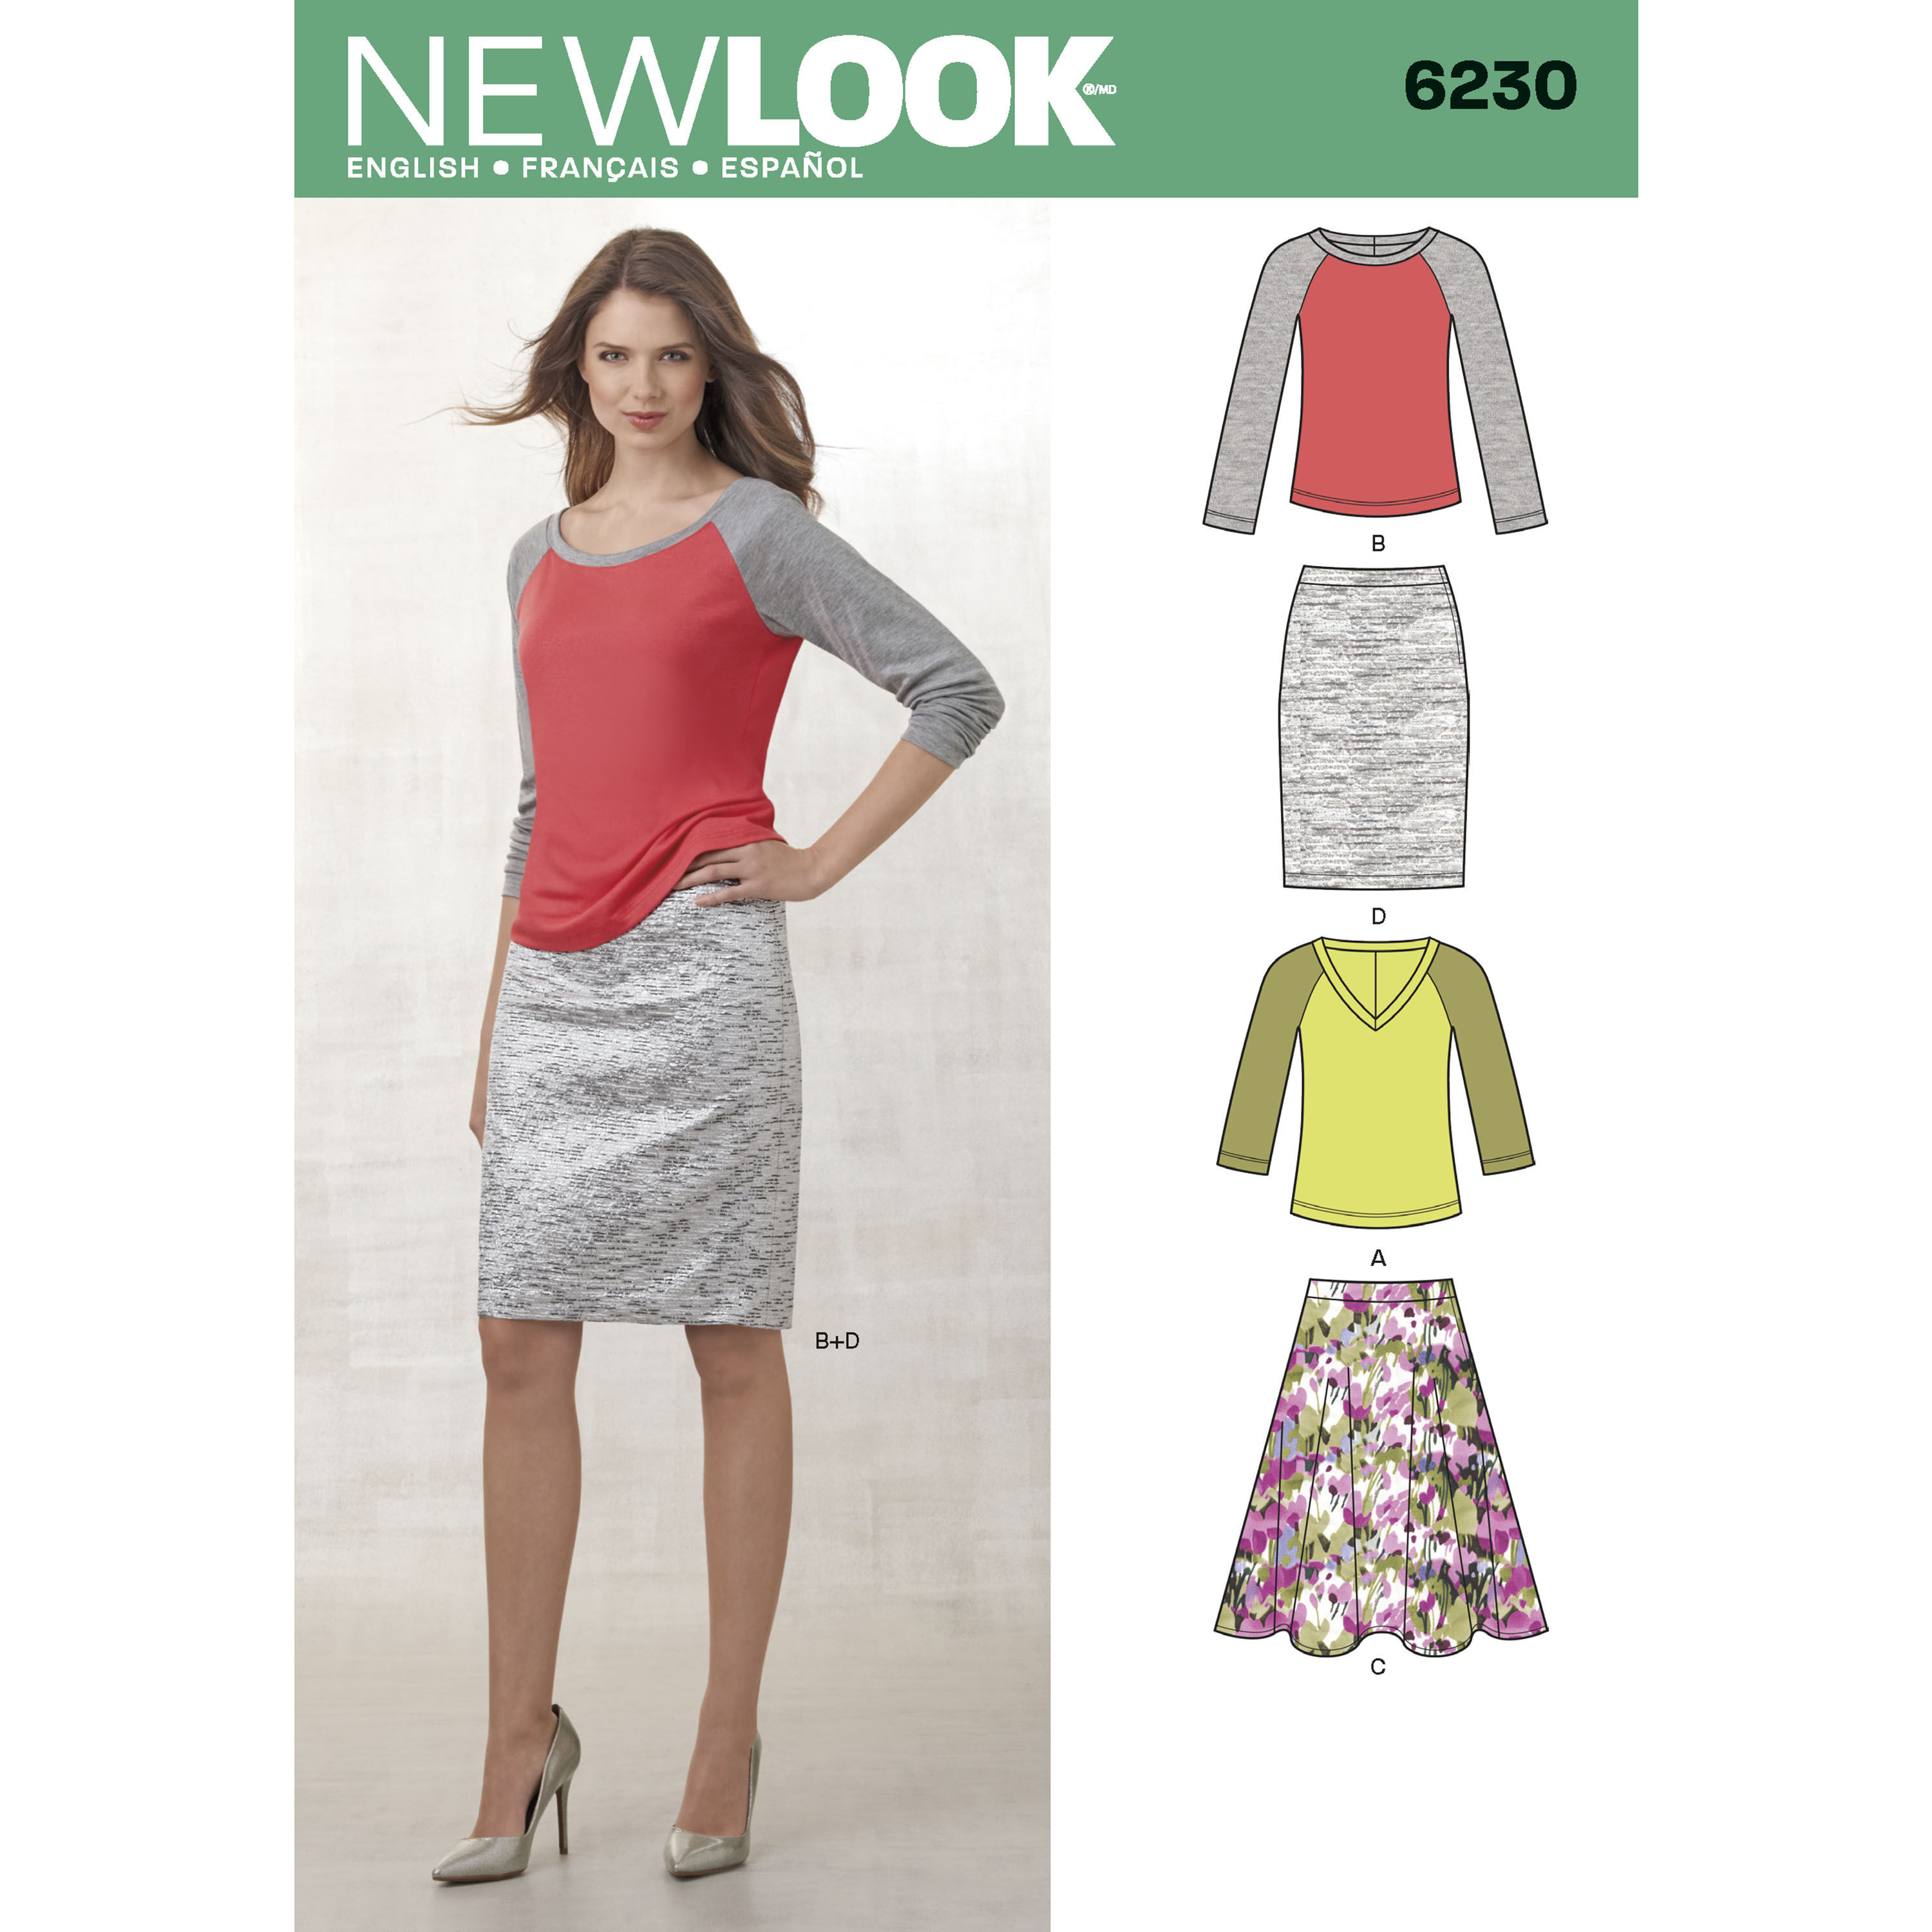 New Look Pattern 6230 Misses' Knit Top and Full or Pencil Skirt